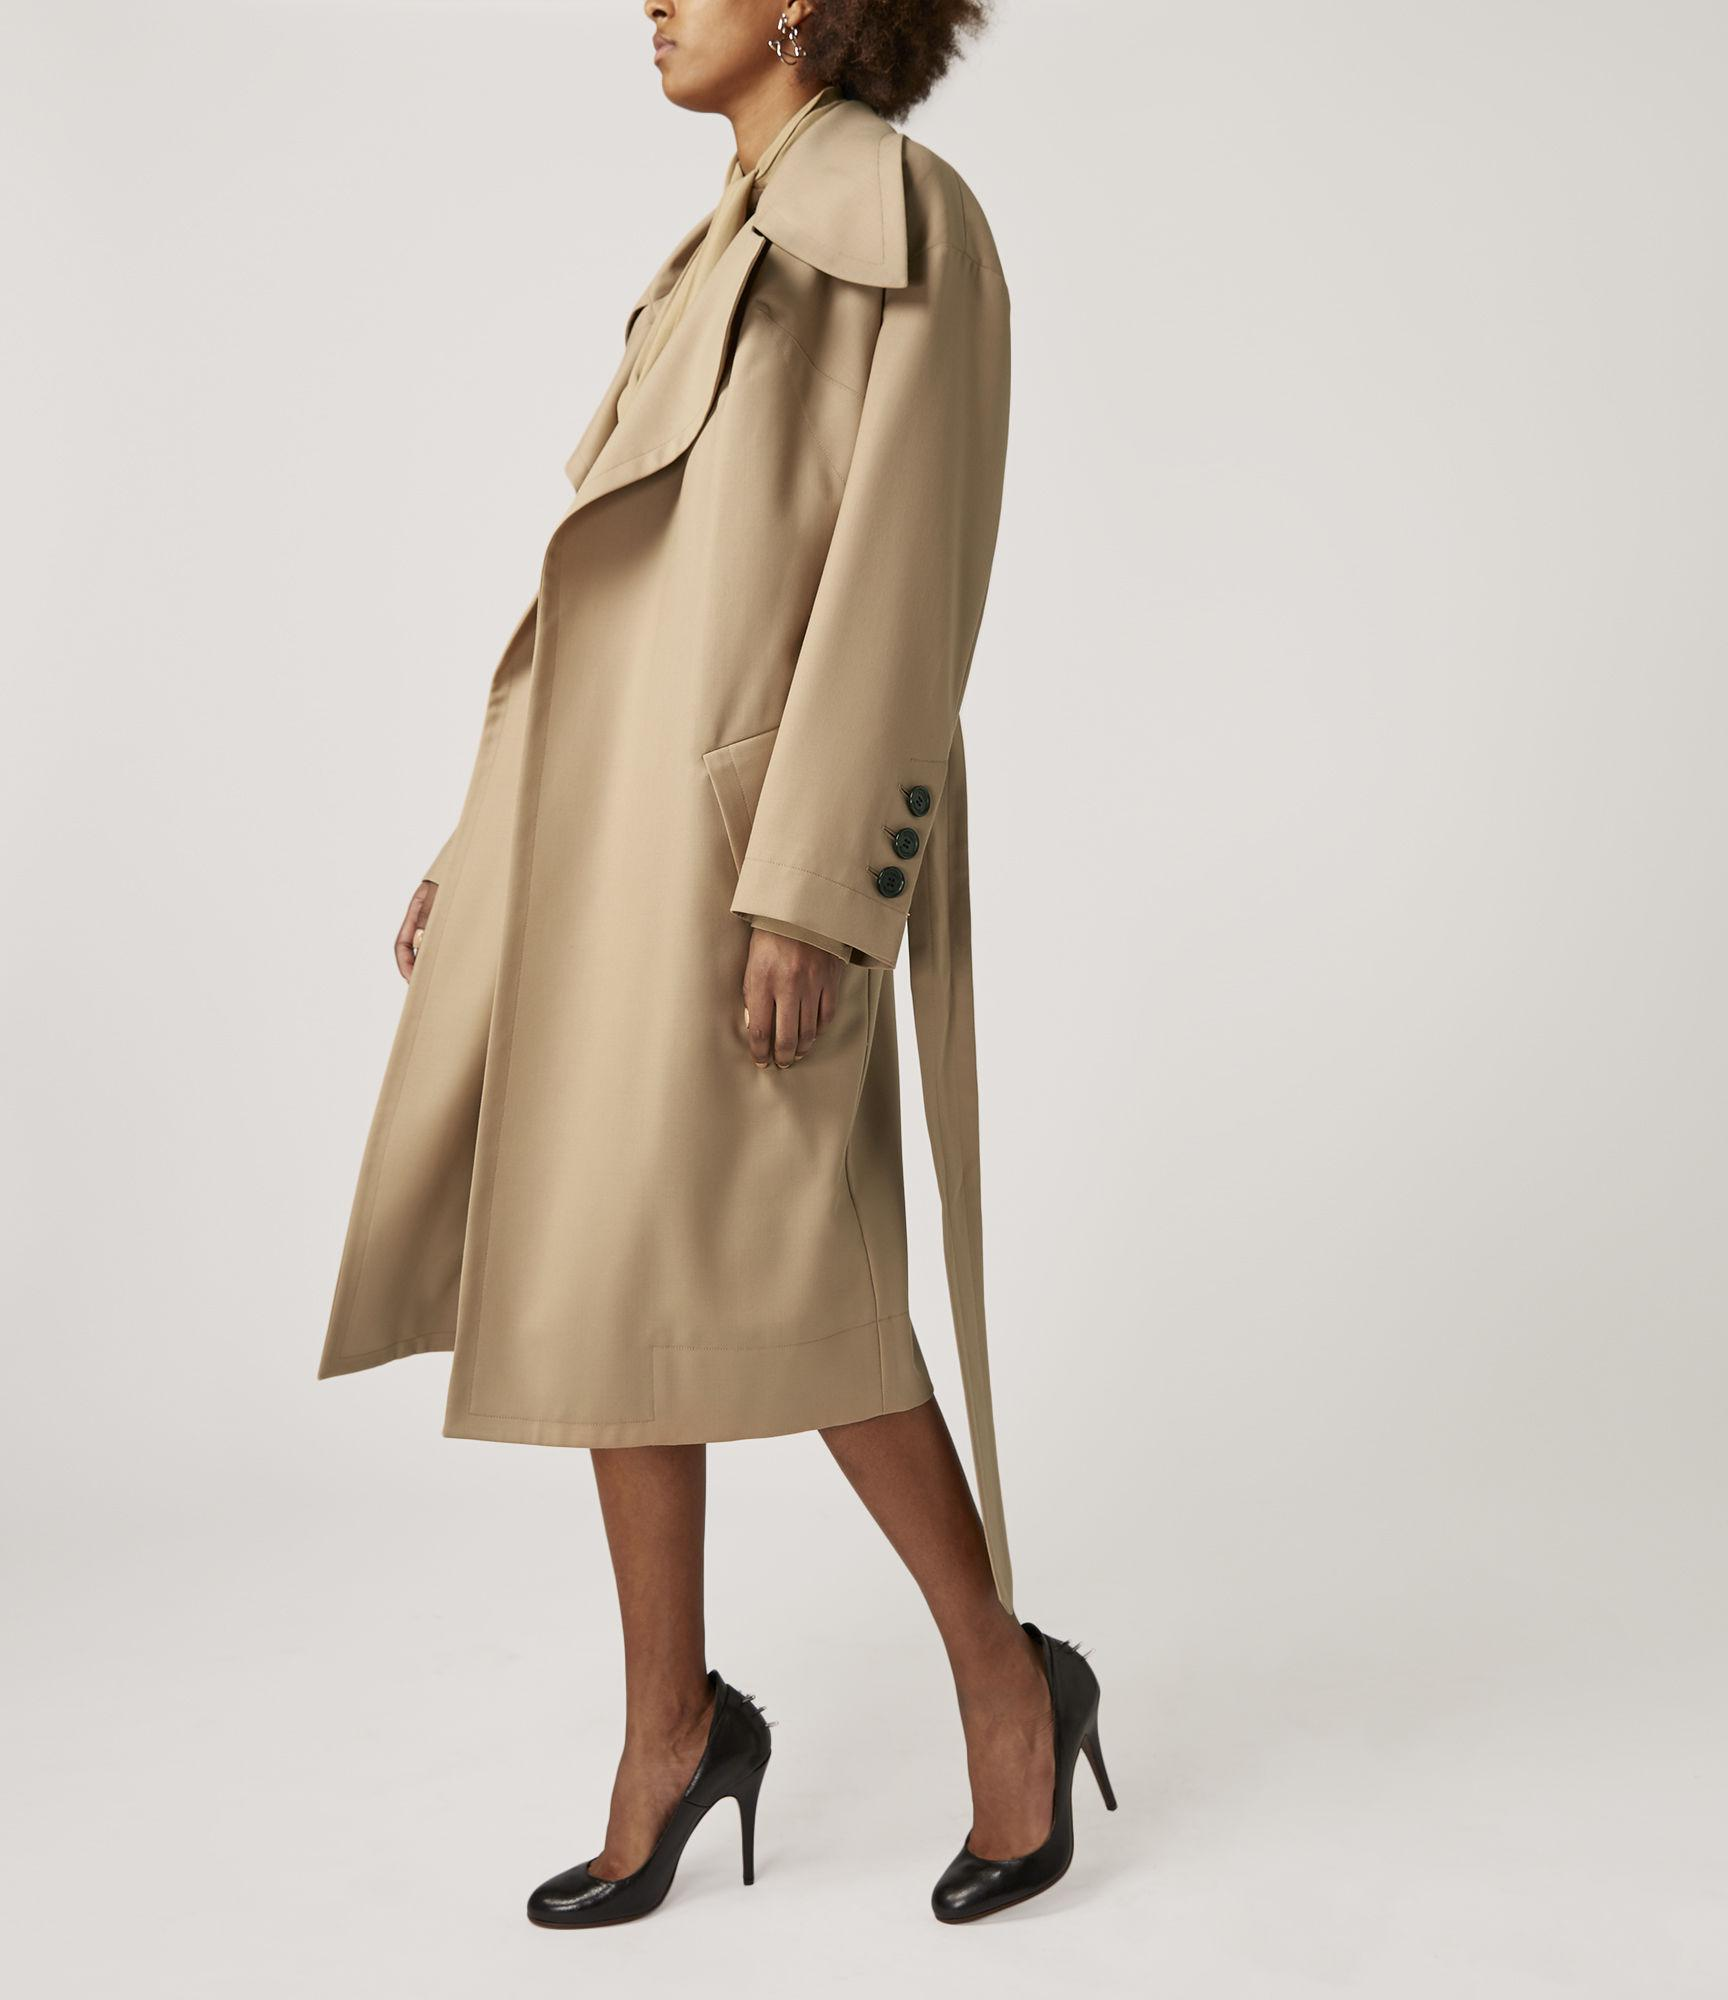 68daeb1a6 Vivienne Westwood Wilma Wrap Coat in Natural - Lyst